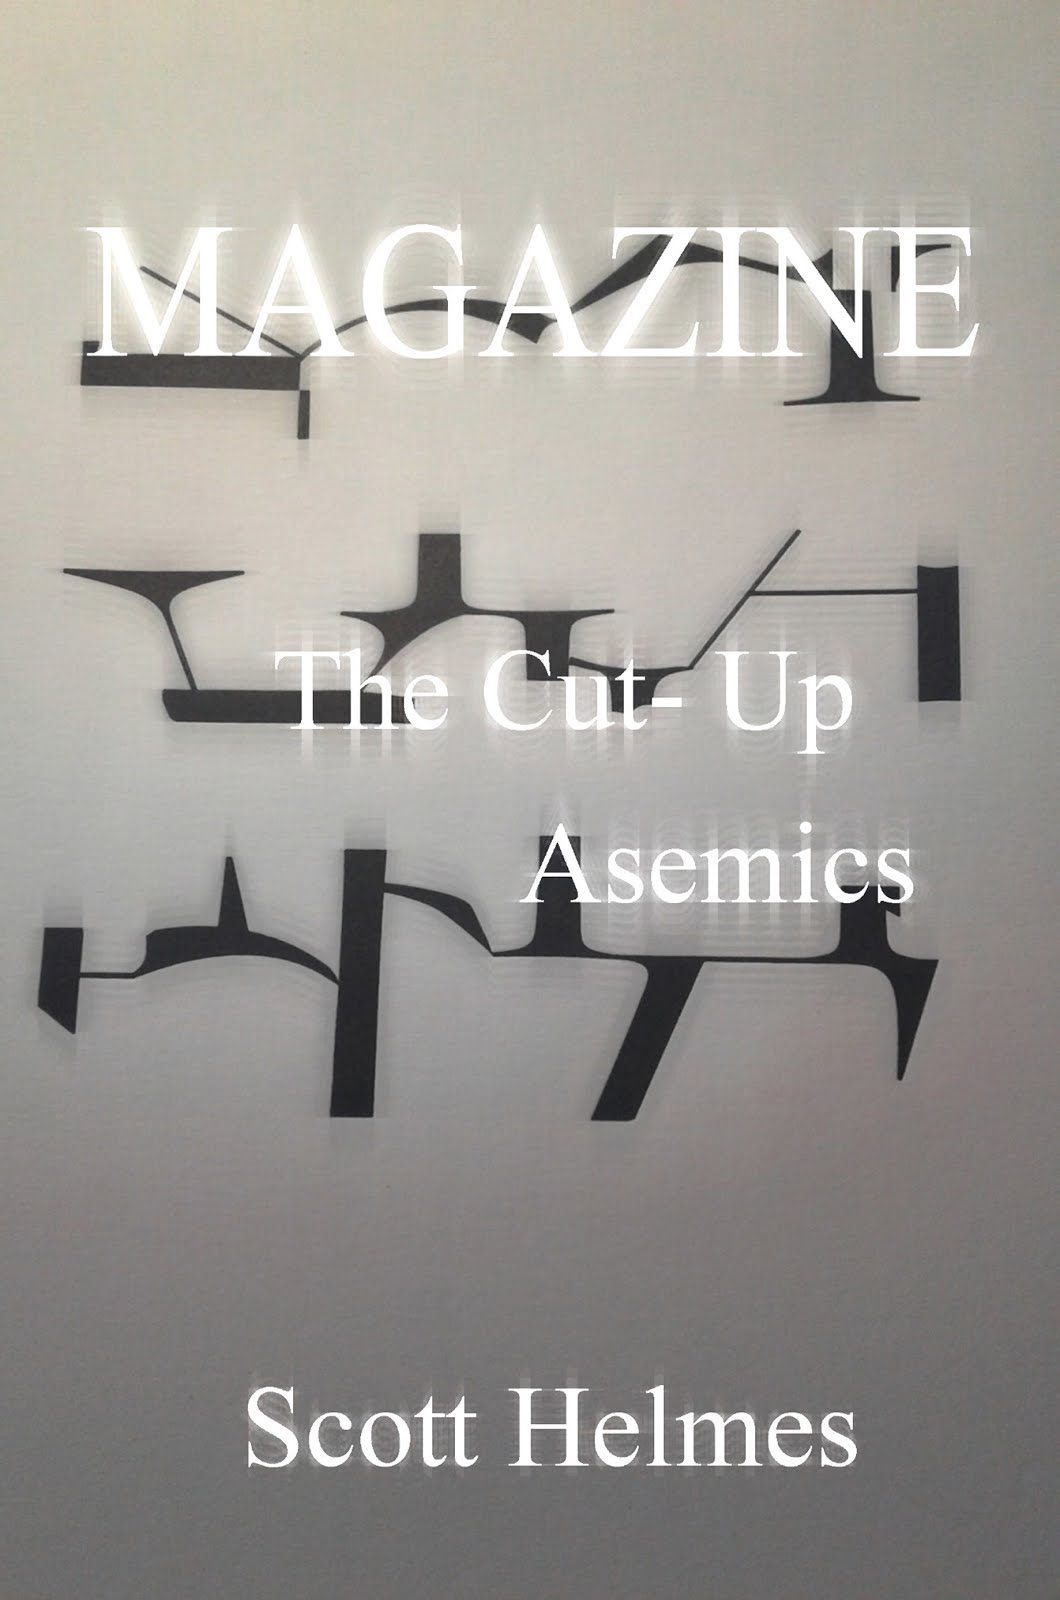 Coming Soon in November of 2019! Magazine: The Cut-Up Asemics by Scott Helmes